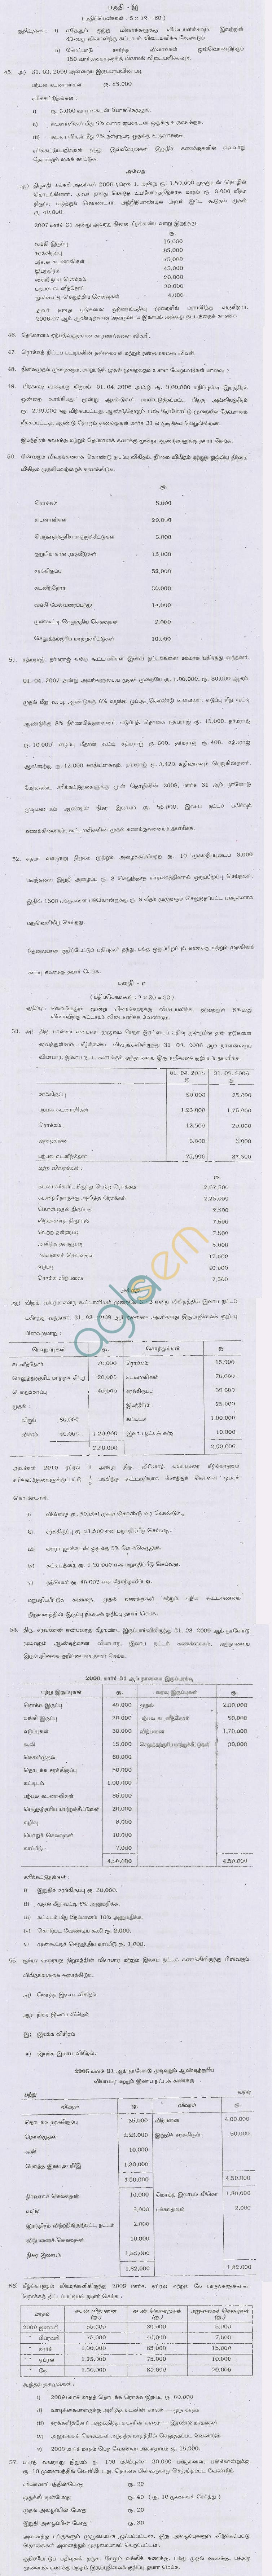 TN Board Higher Secondary (Plus 2)AccountancyQuestion PapersJune 2011